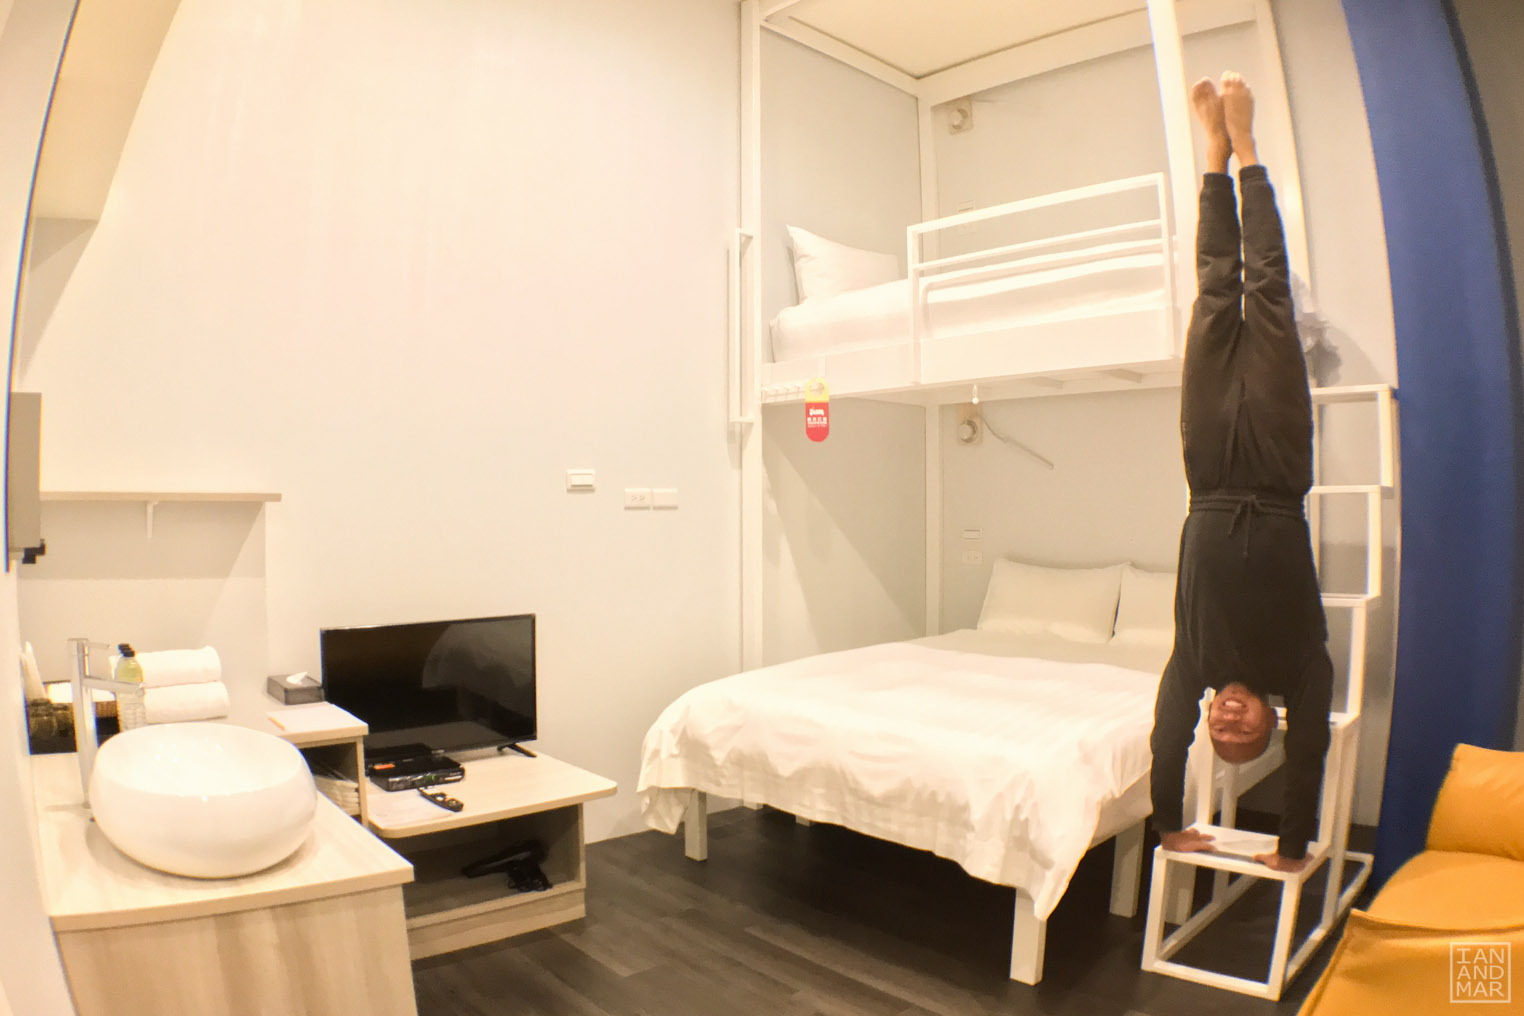 man on a hotel room doing a handstand